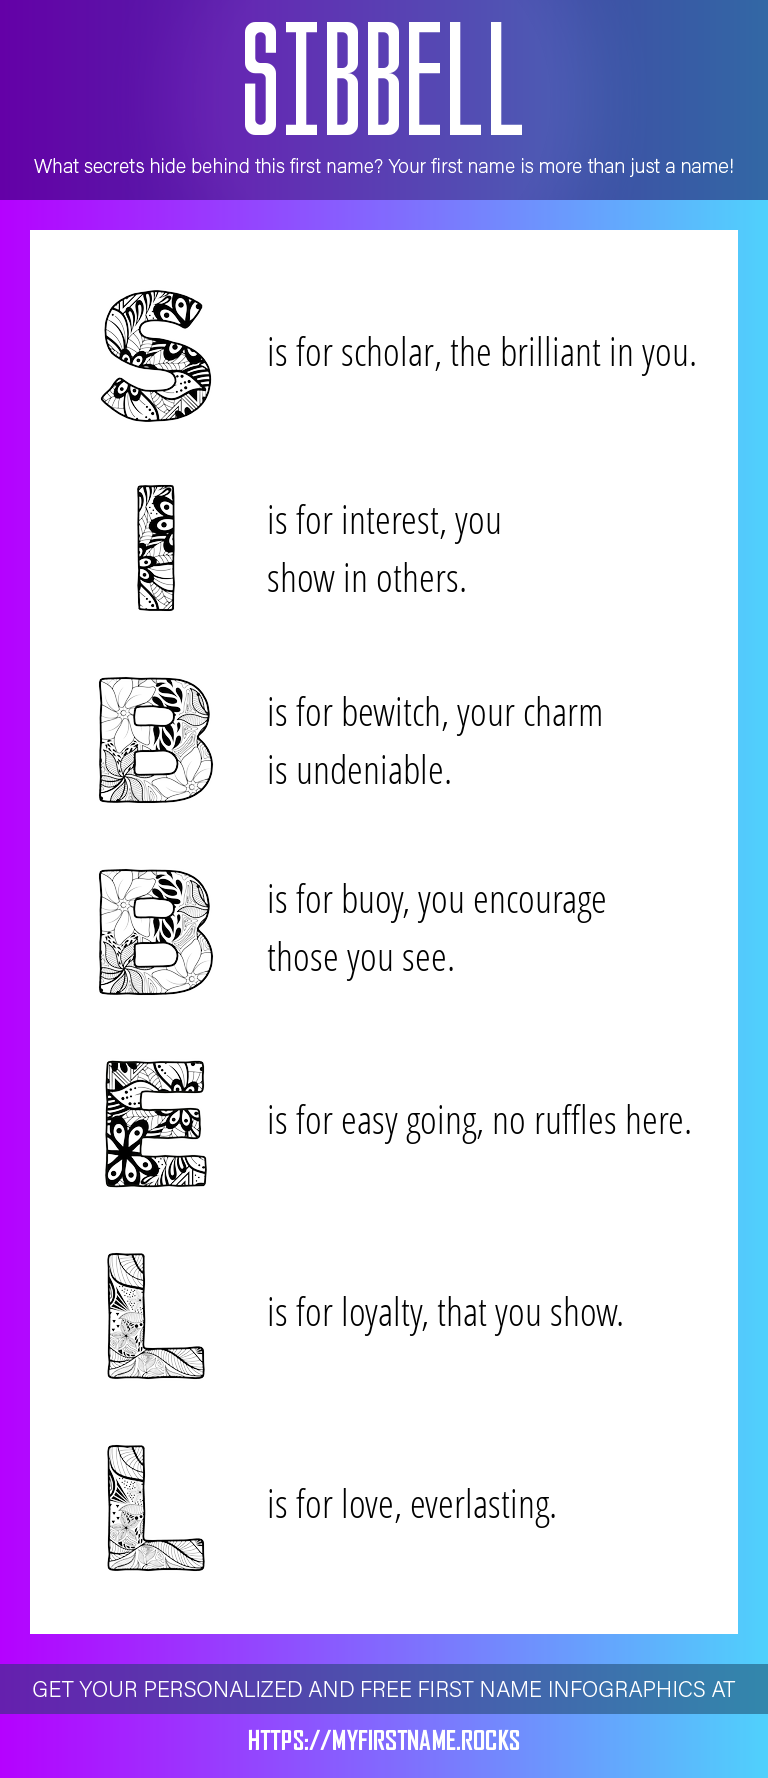 Sibbell Infographics